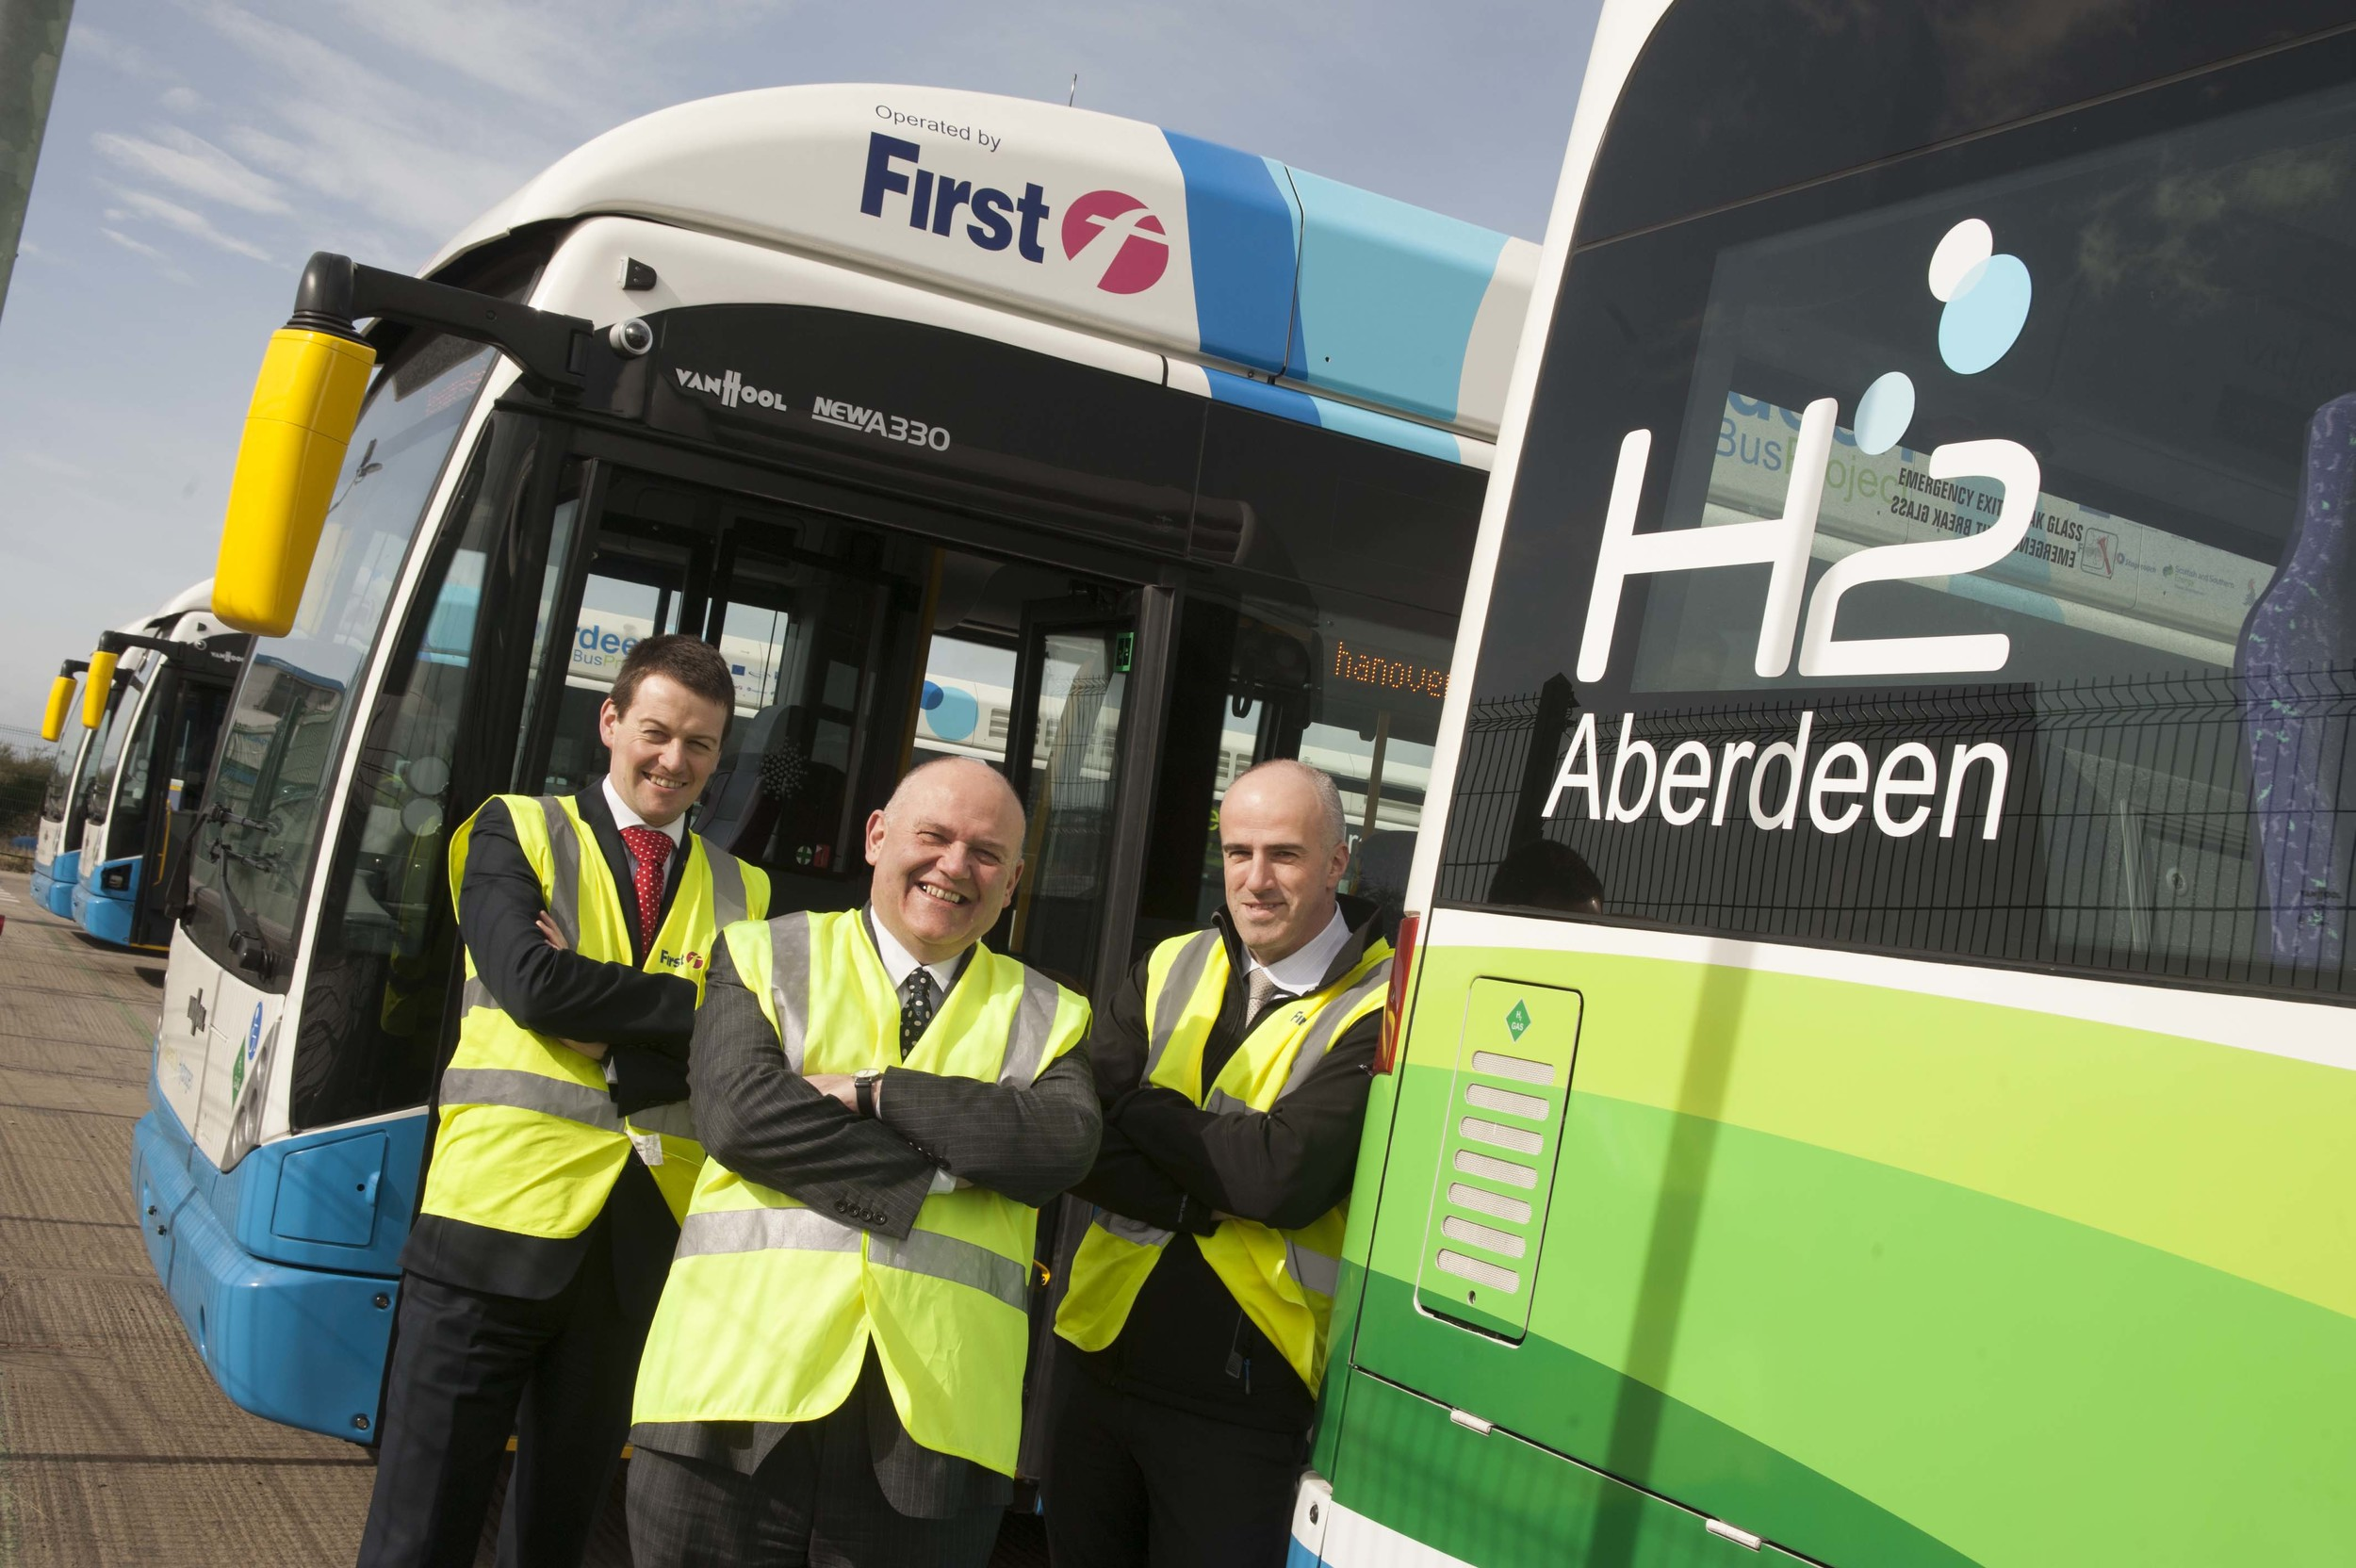 Aberdeen's fleet of 10 hydrogen fuel cell buses operated by First Group and Stagecoach